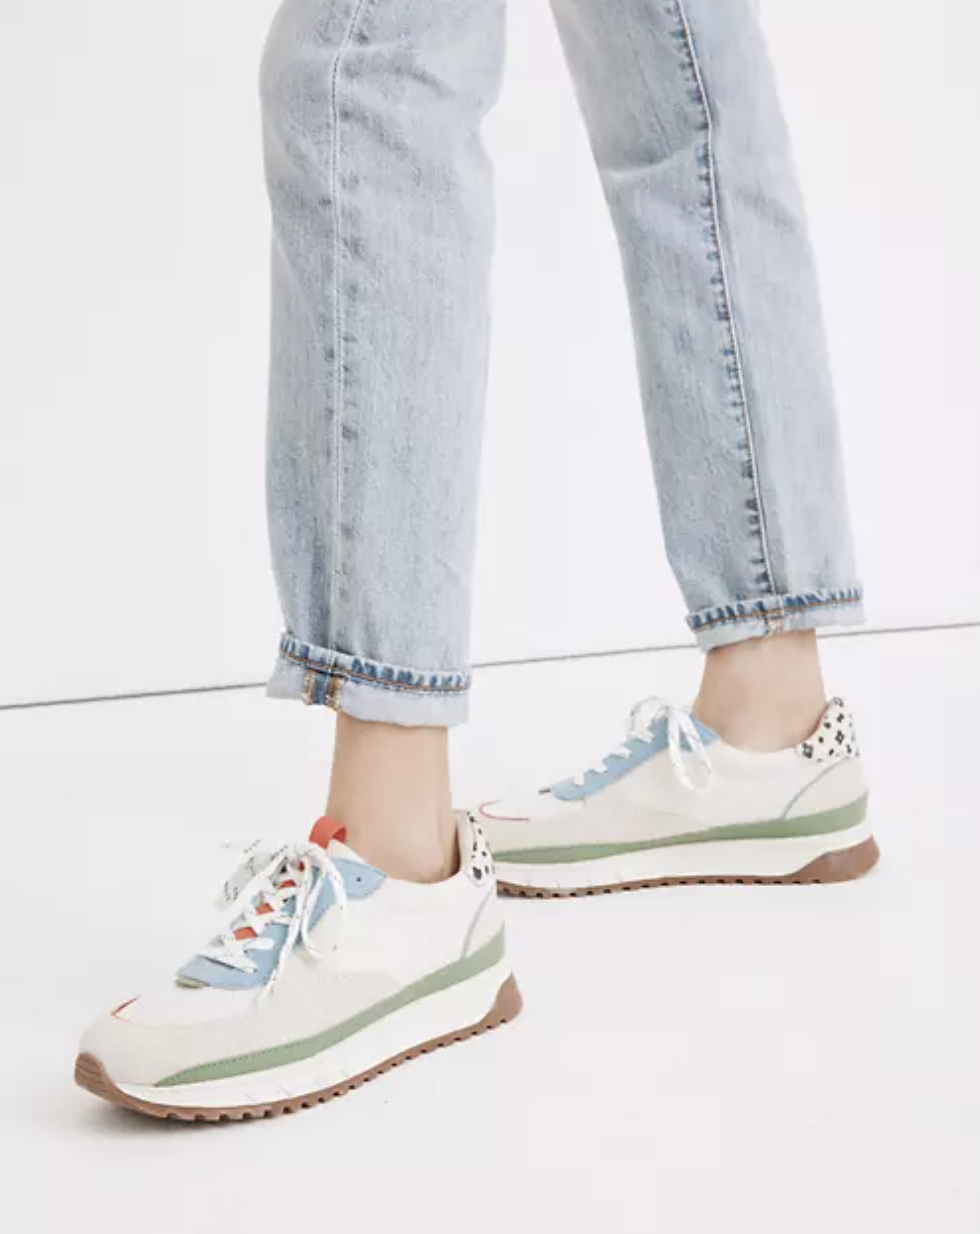 madewell-trainer-sneakers